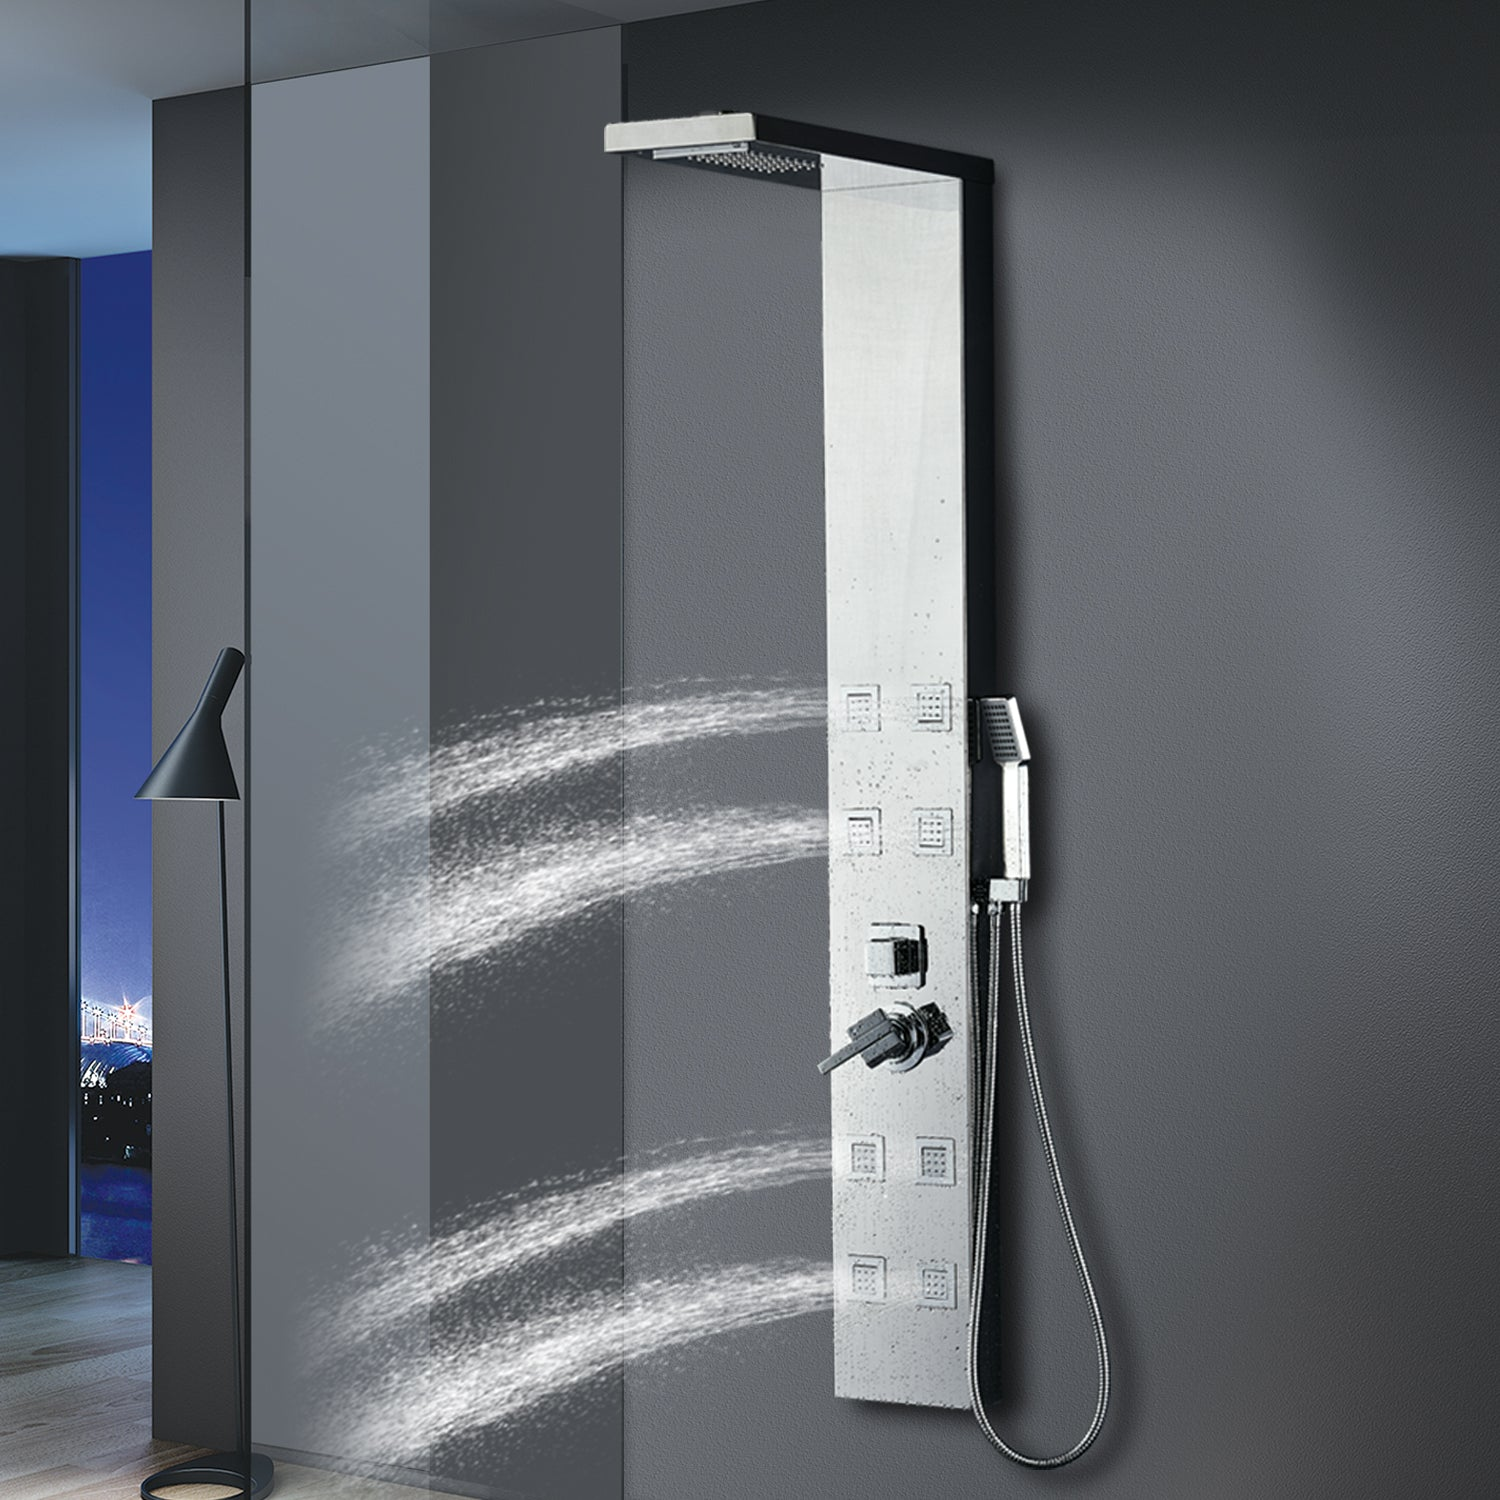 http://www.amazon.com/Stainless-Connection-Rainfall-Overhead-Multi-Function/dp/B01EZJH8II/ref=sr_1_1?ie=UTF8&keywords=shower+panel